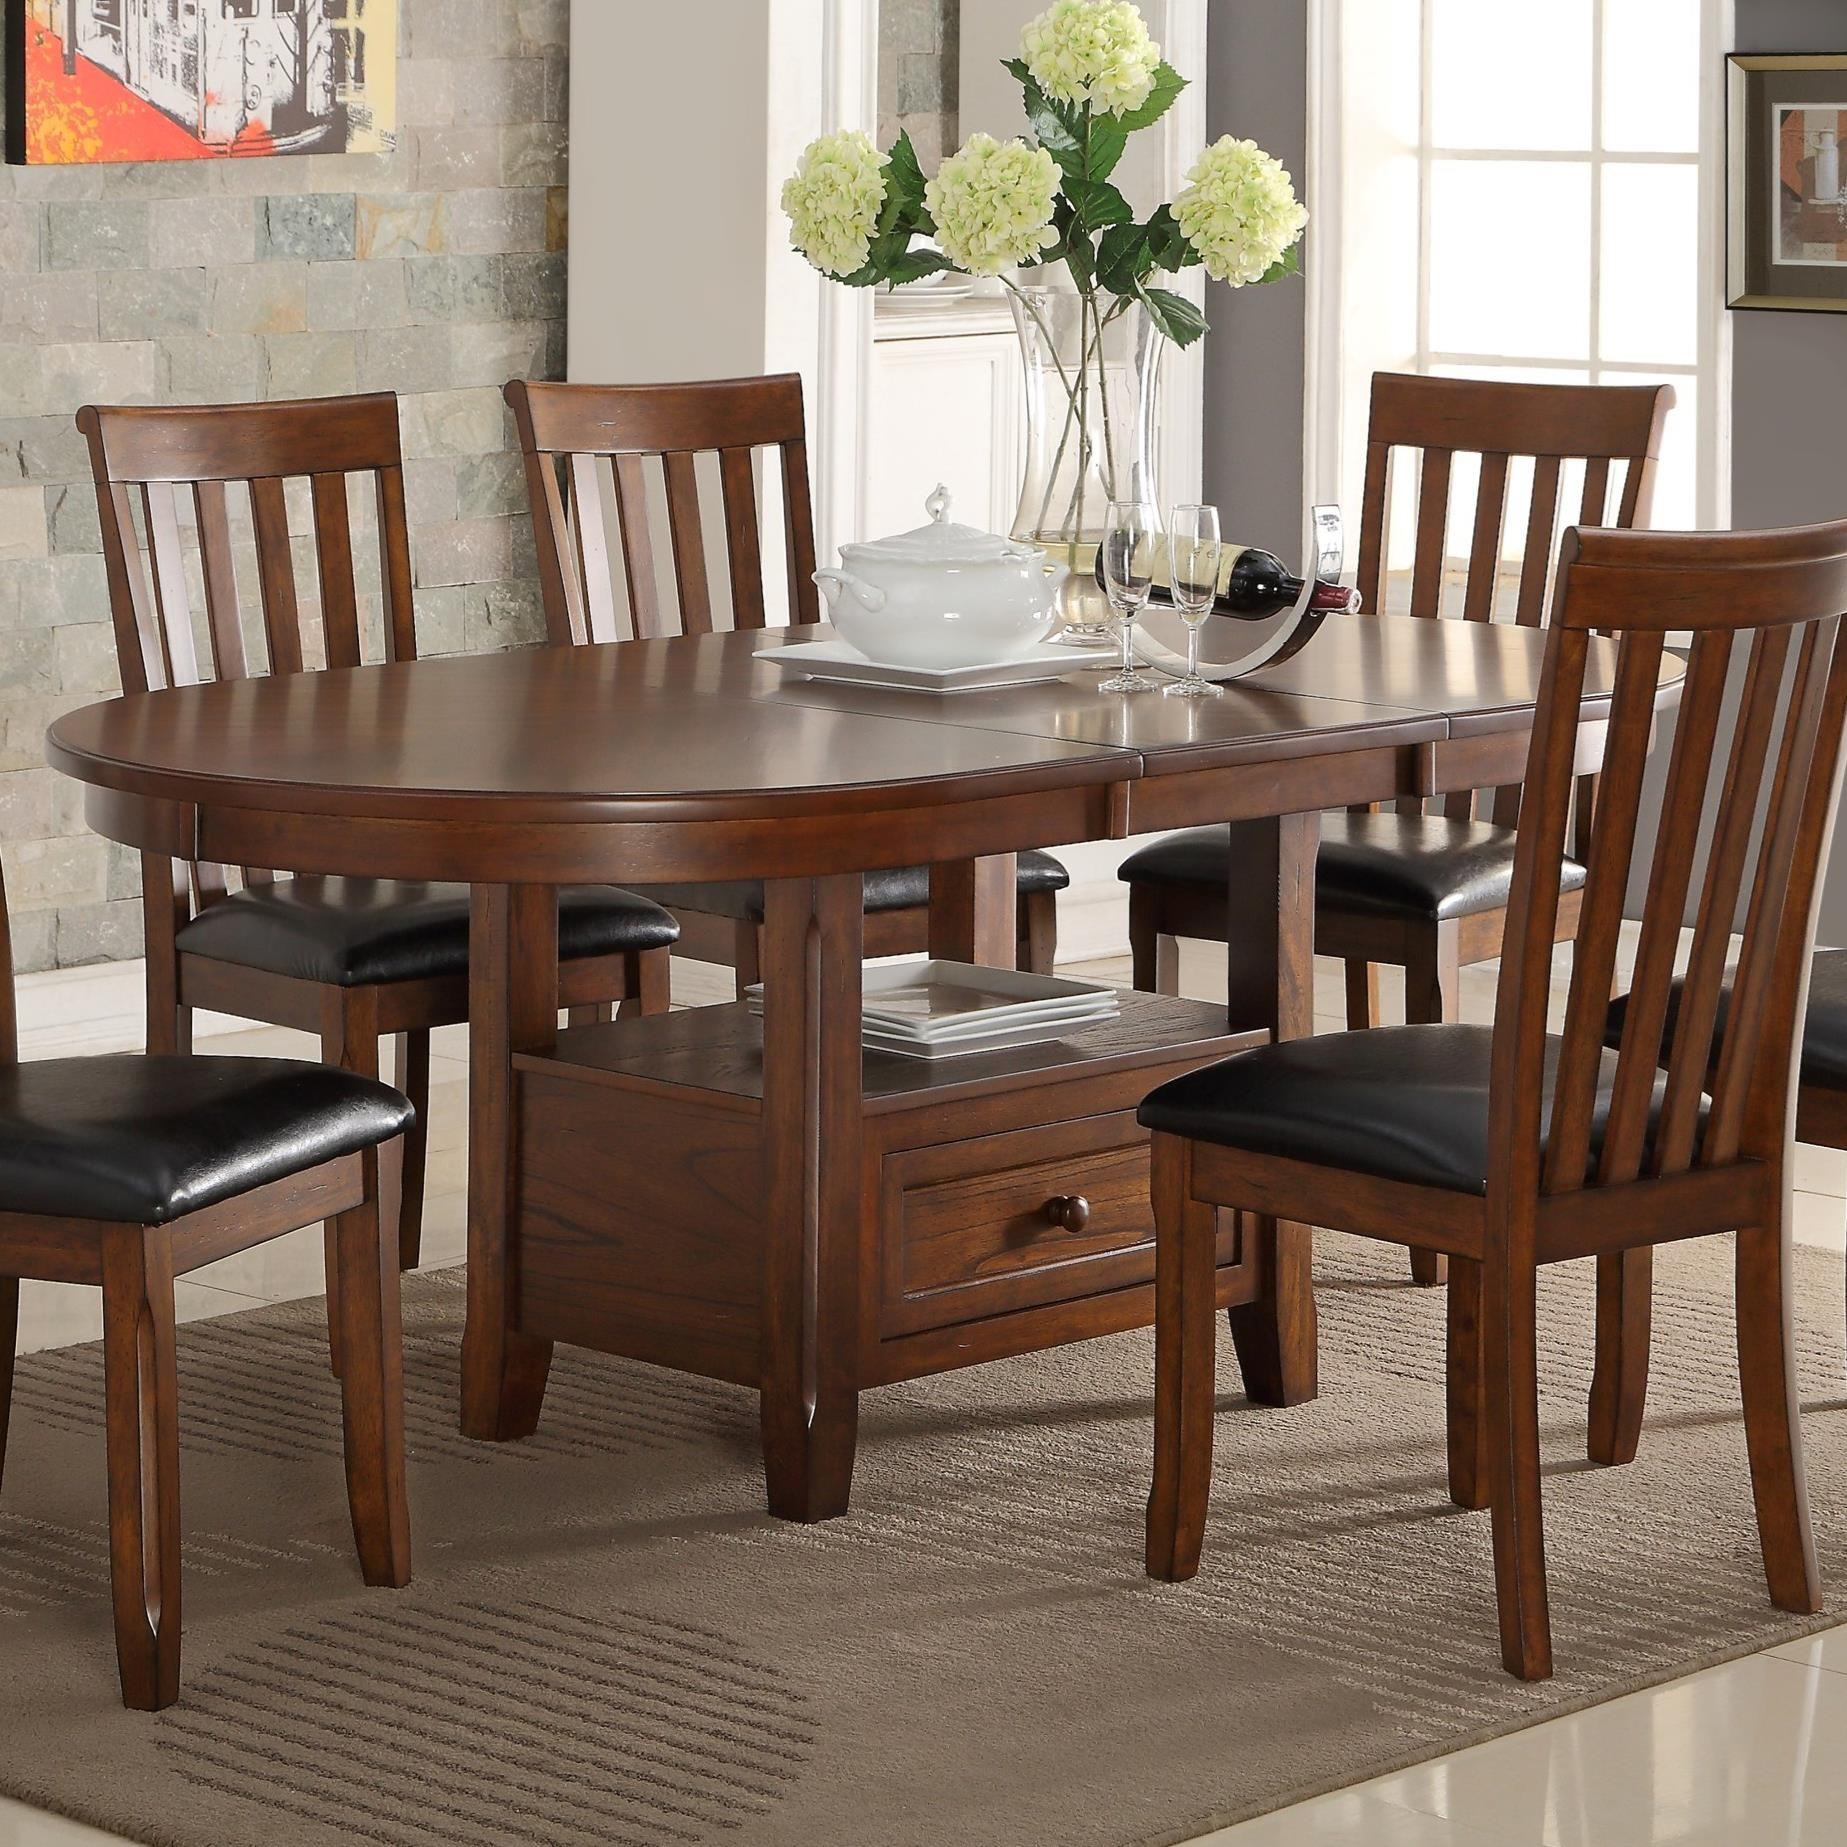 New Classic Wilson D0226 10 Round Dining Table With